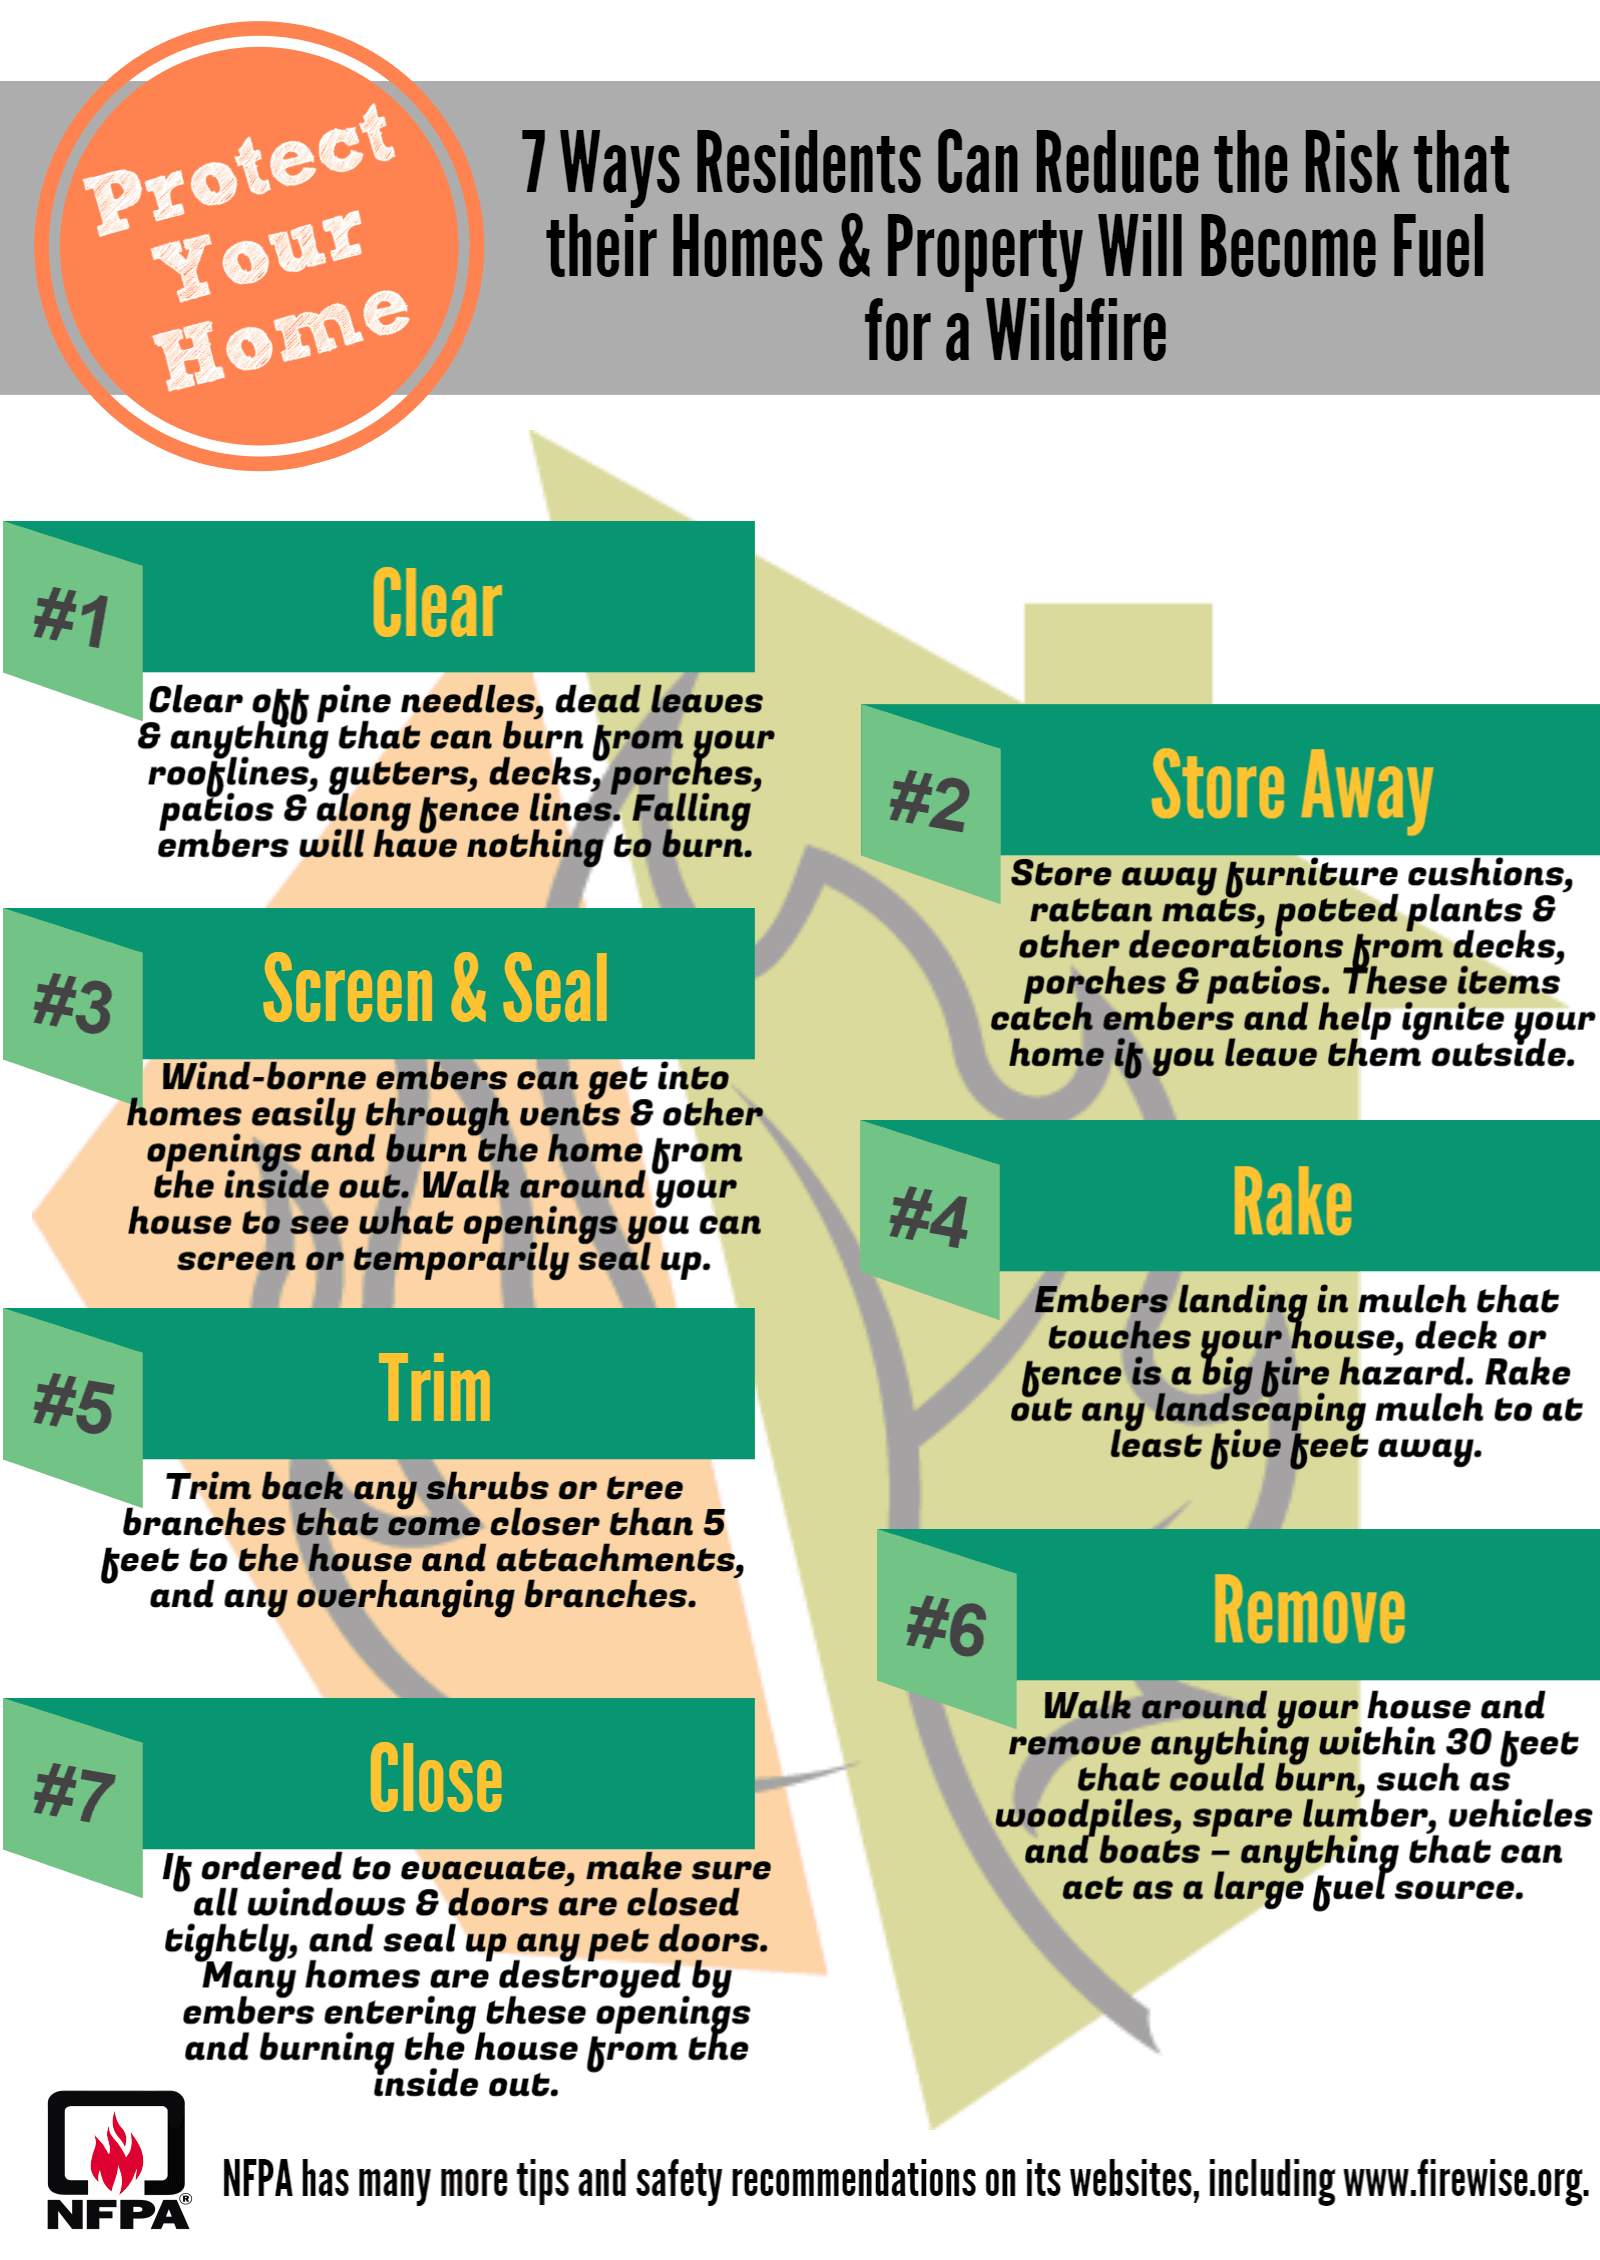 7 Firewise Tips infographic